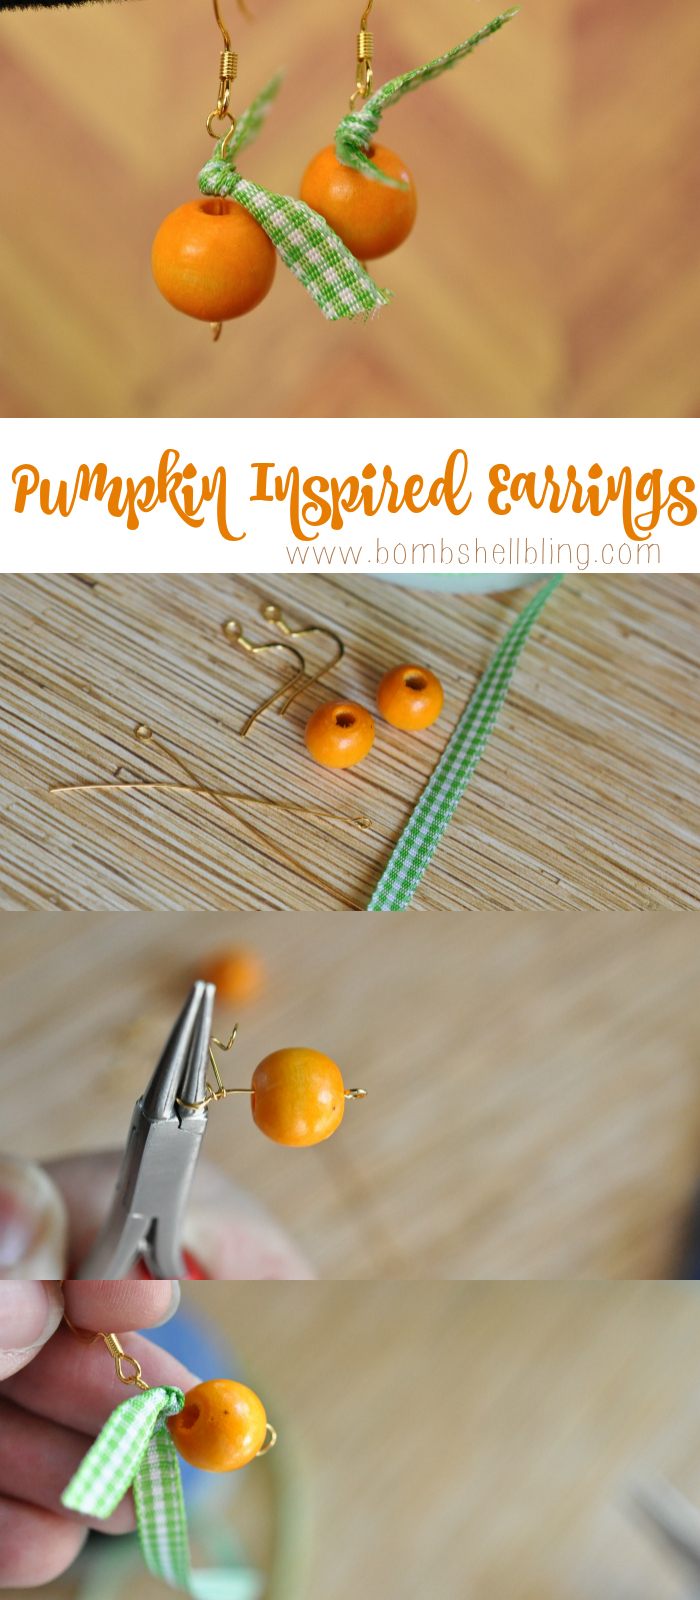 How to make pumpkin inspired earrings!